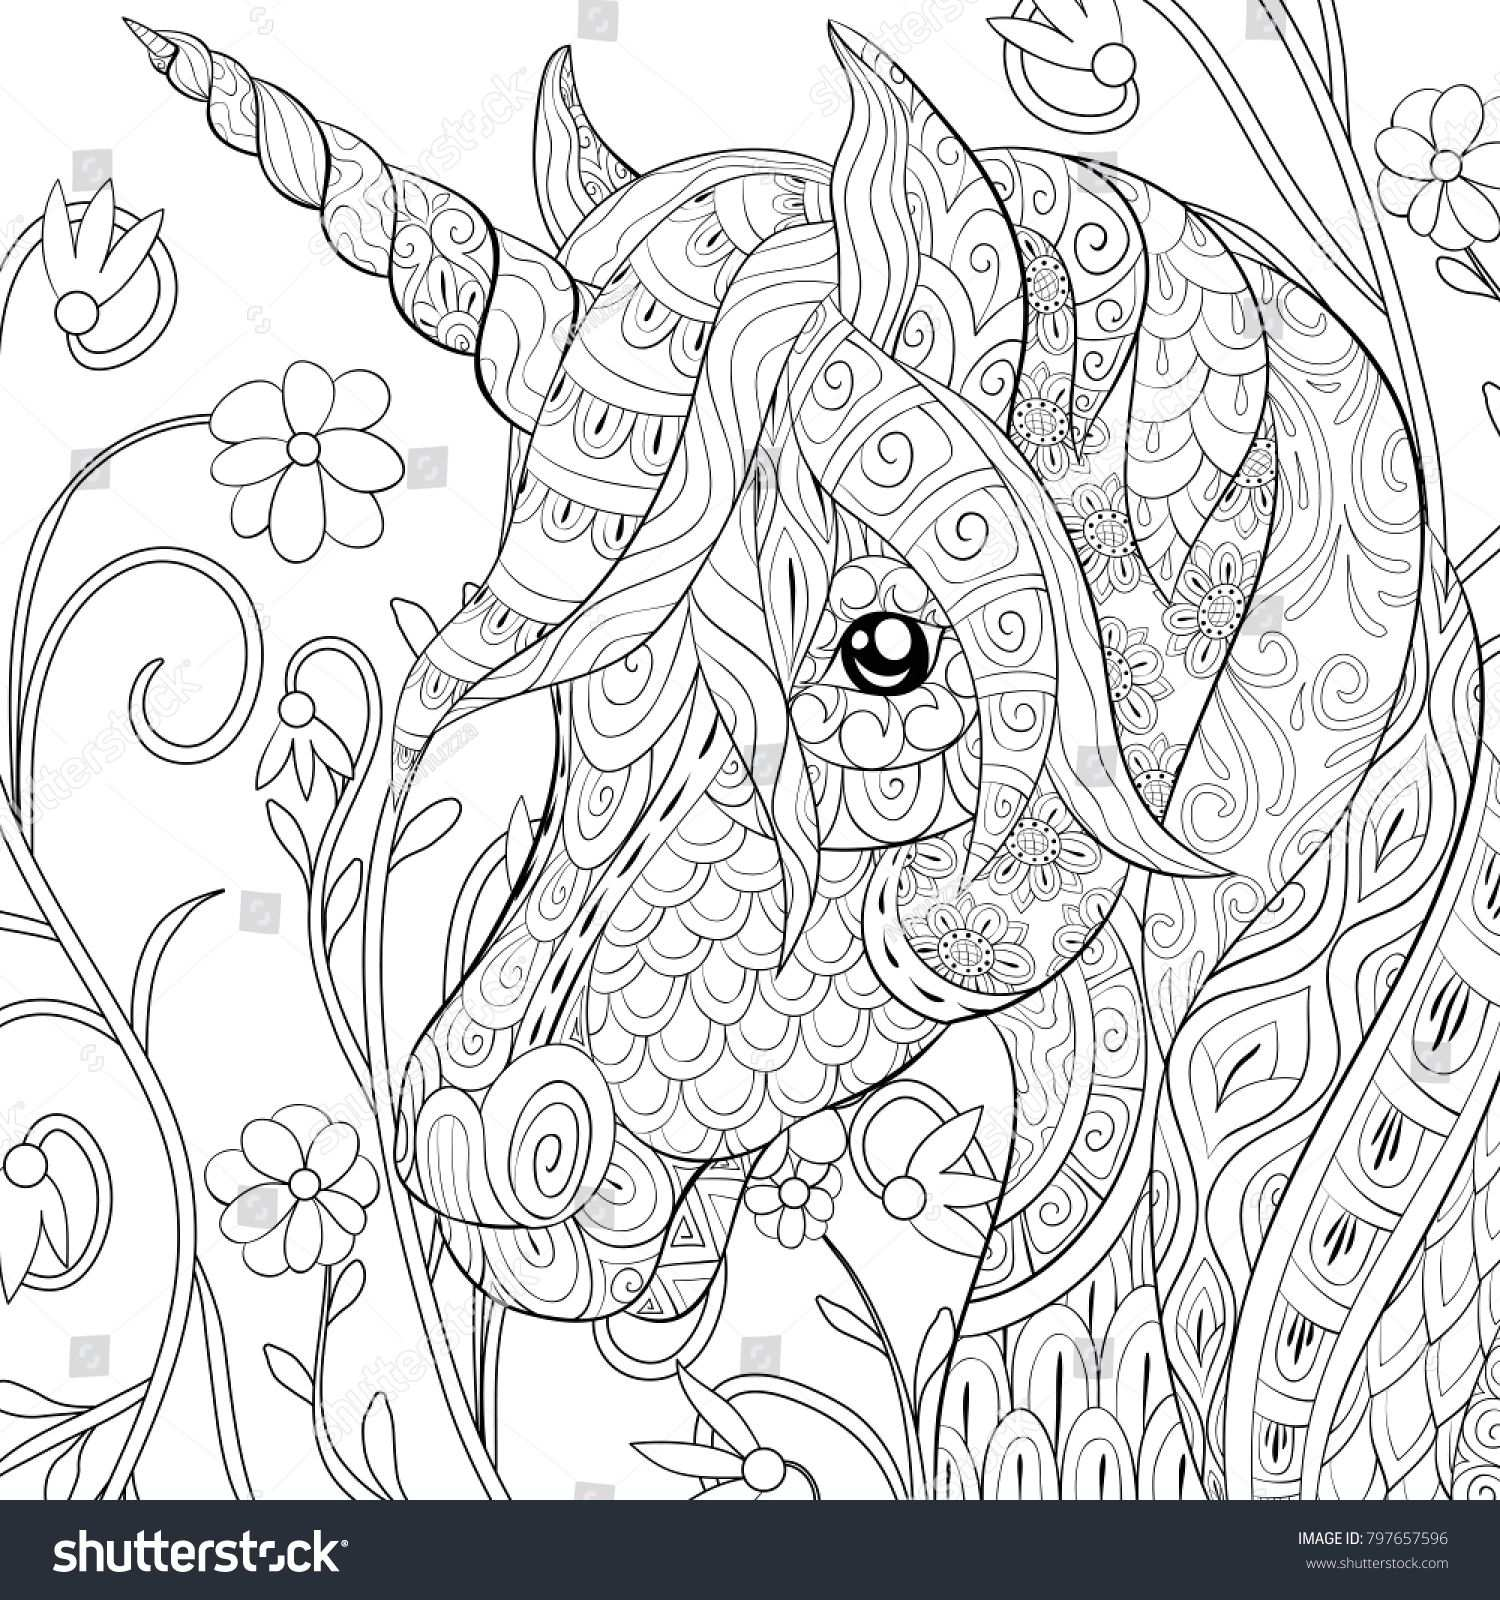 Adult Coloring Page Book A Cute Unicorn On The Floral Background